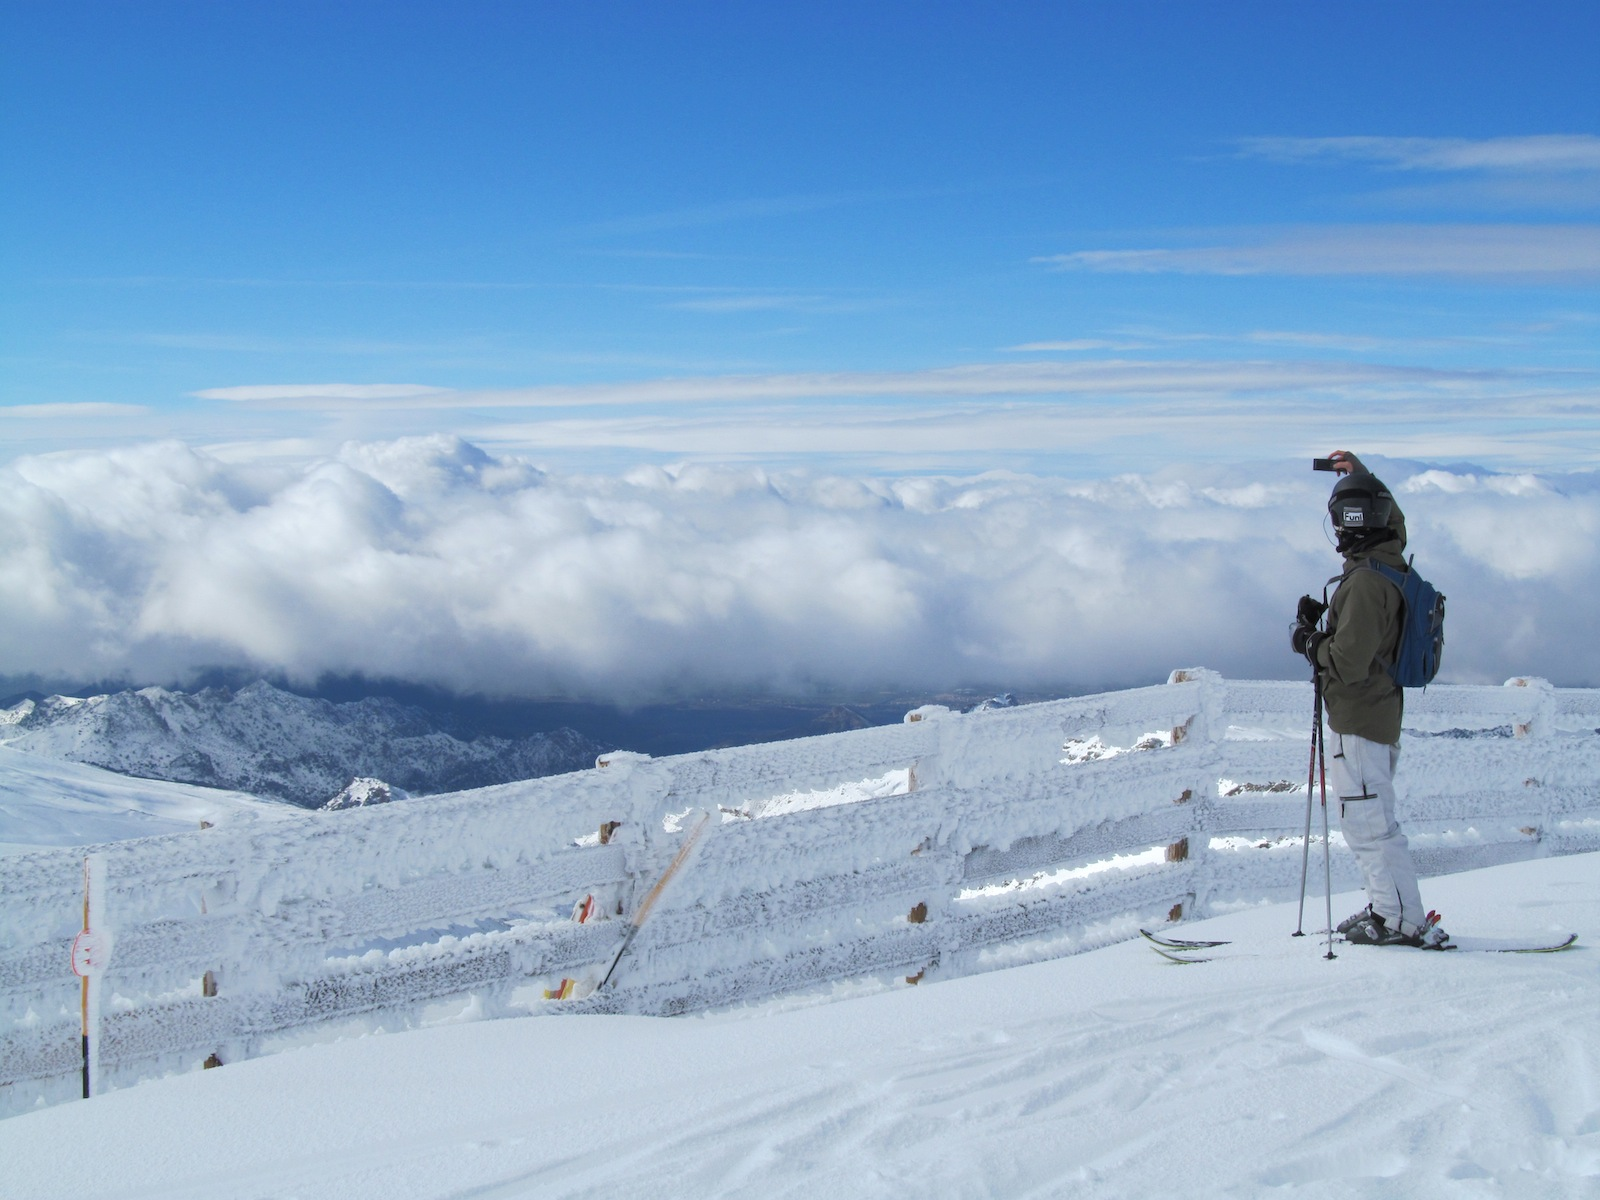 sierra nevada, spain, snow, powder